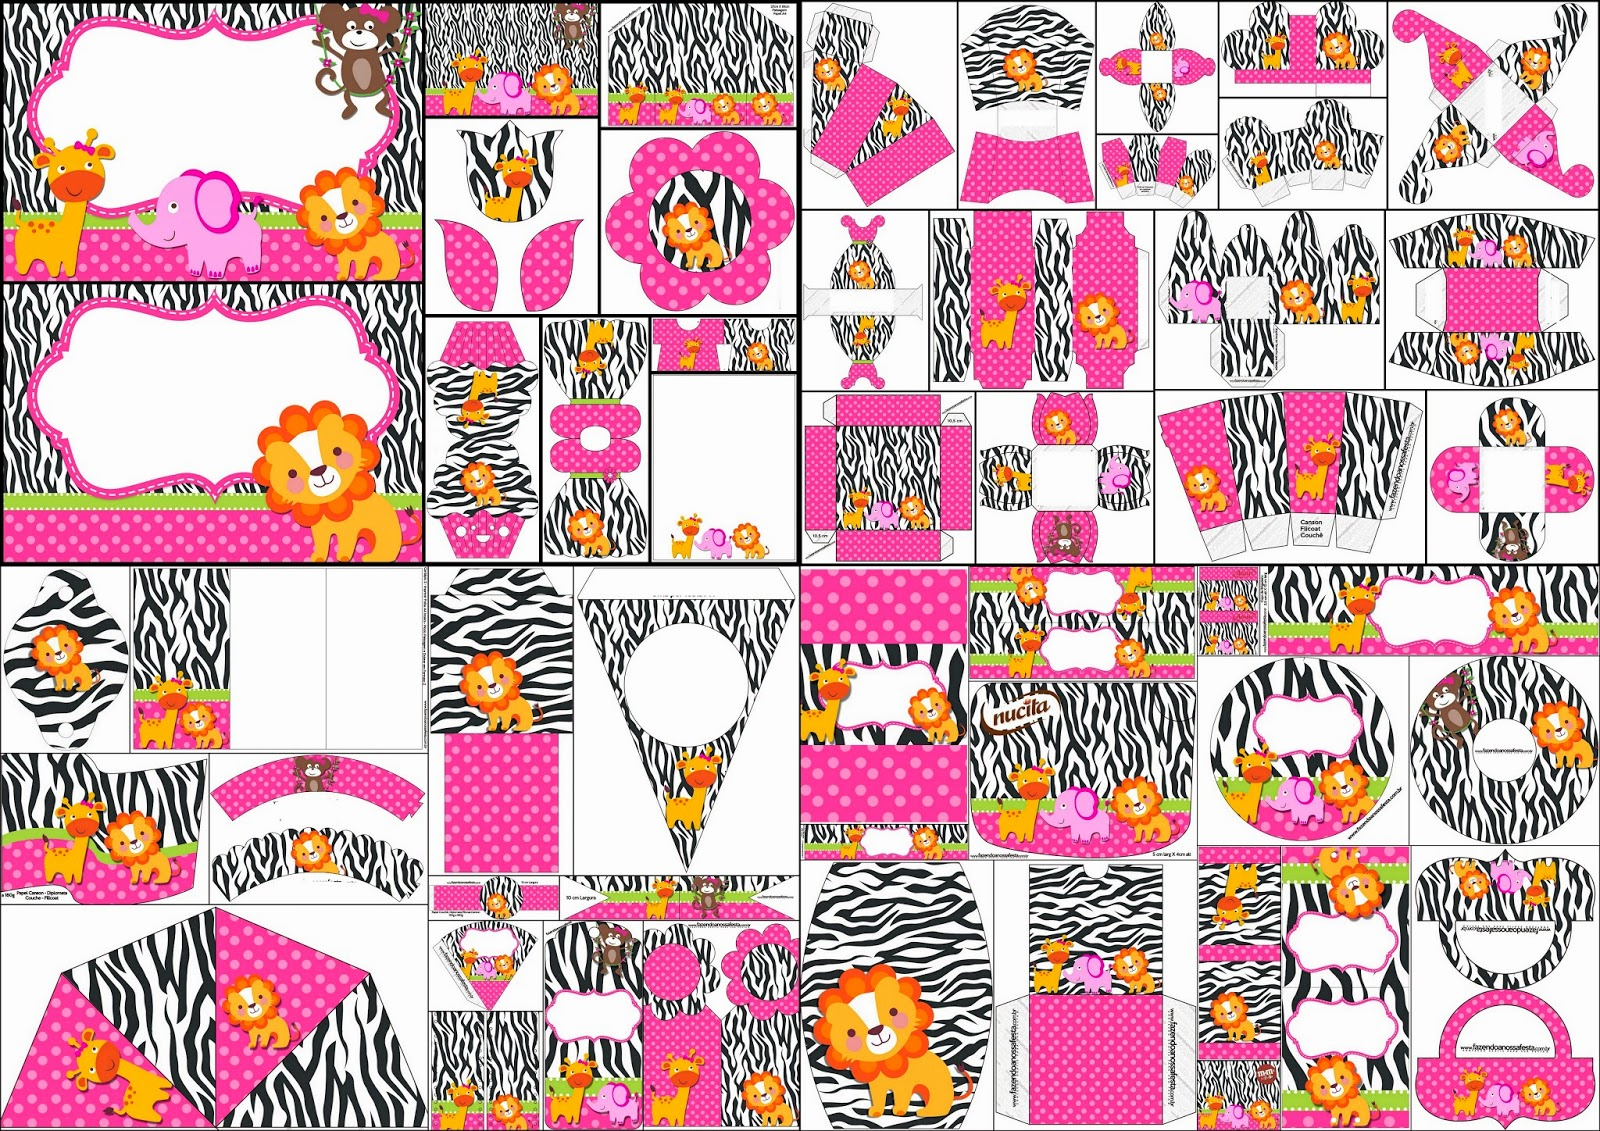 The Jungle for Girls: Free Printable Kit.